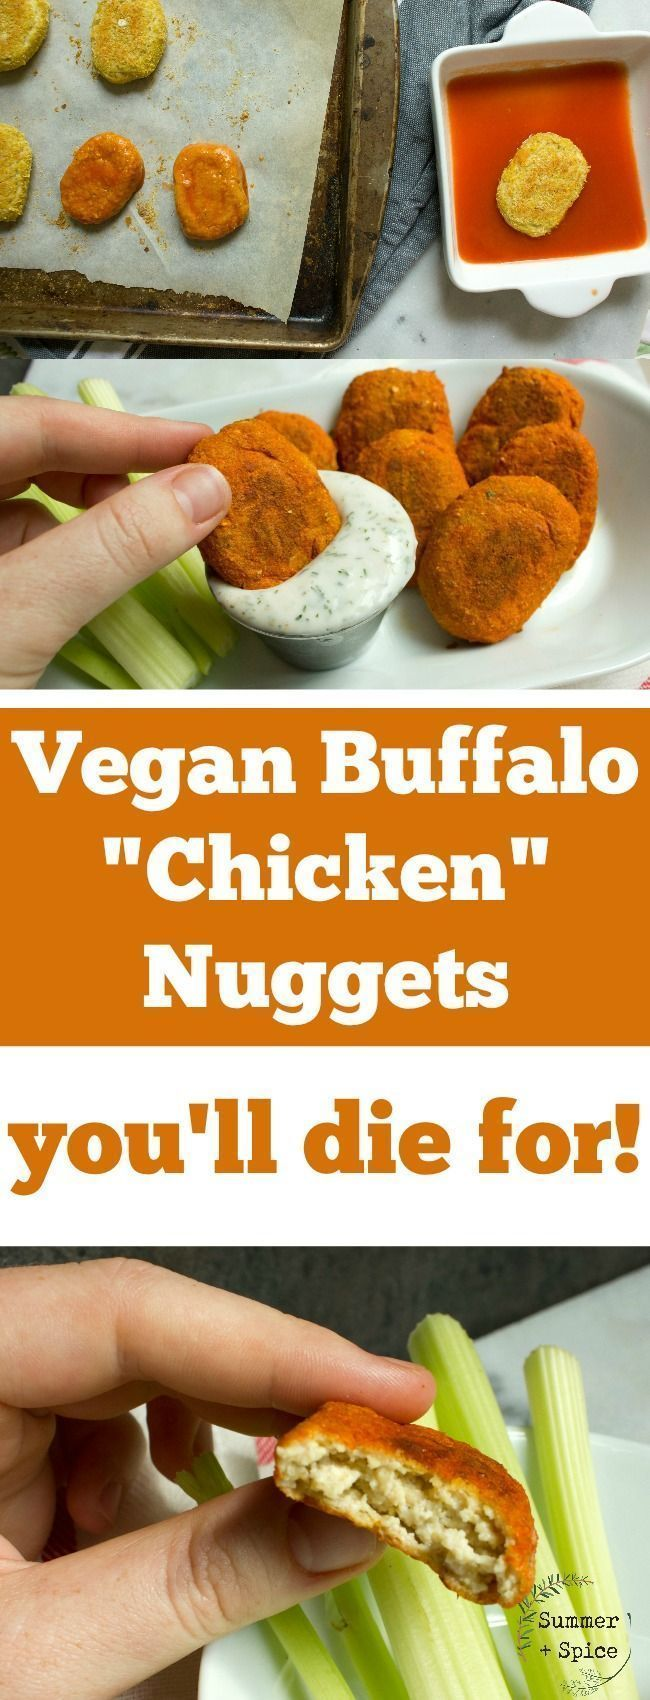 """Vegan Buffalo """"Chicken"""" Nuggets You'll Die For images"""